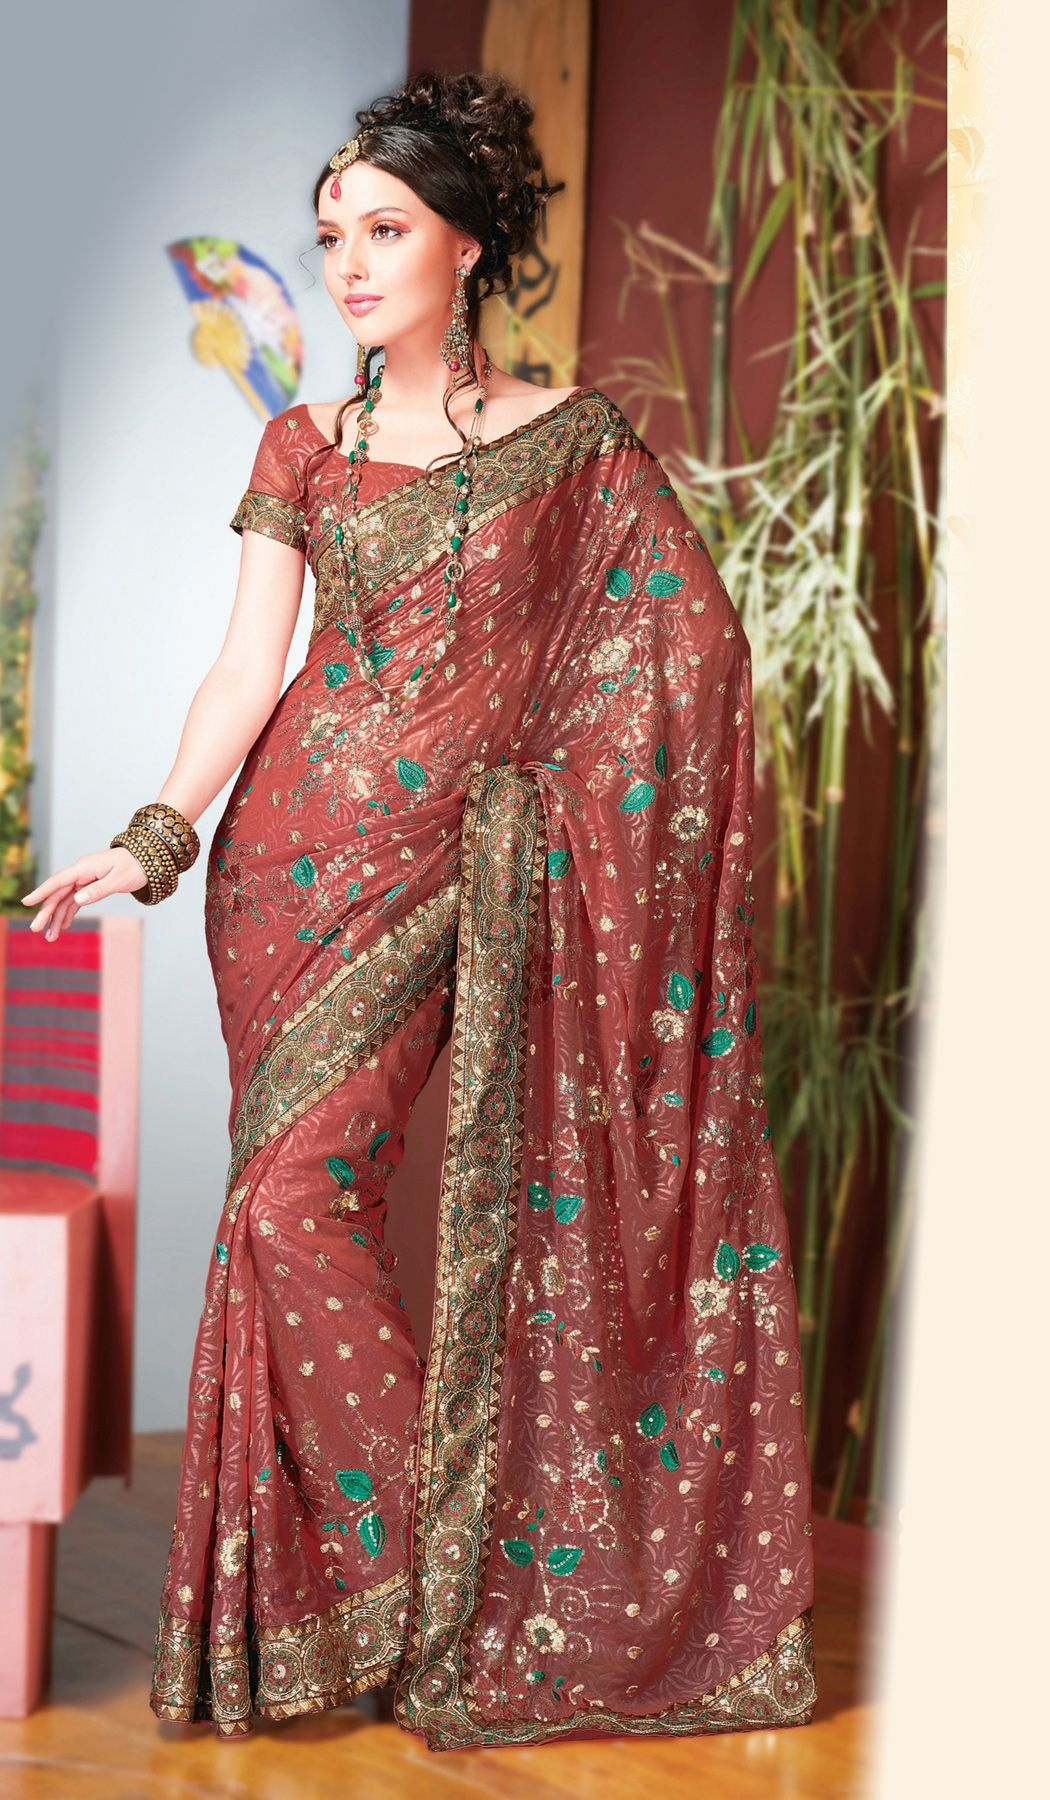 These Days S Get Really Enthralled And Excited About The New Range Of Sarees In Dominant Trend By Designers Ideals Our World Indian Wedding